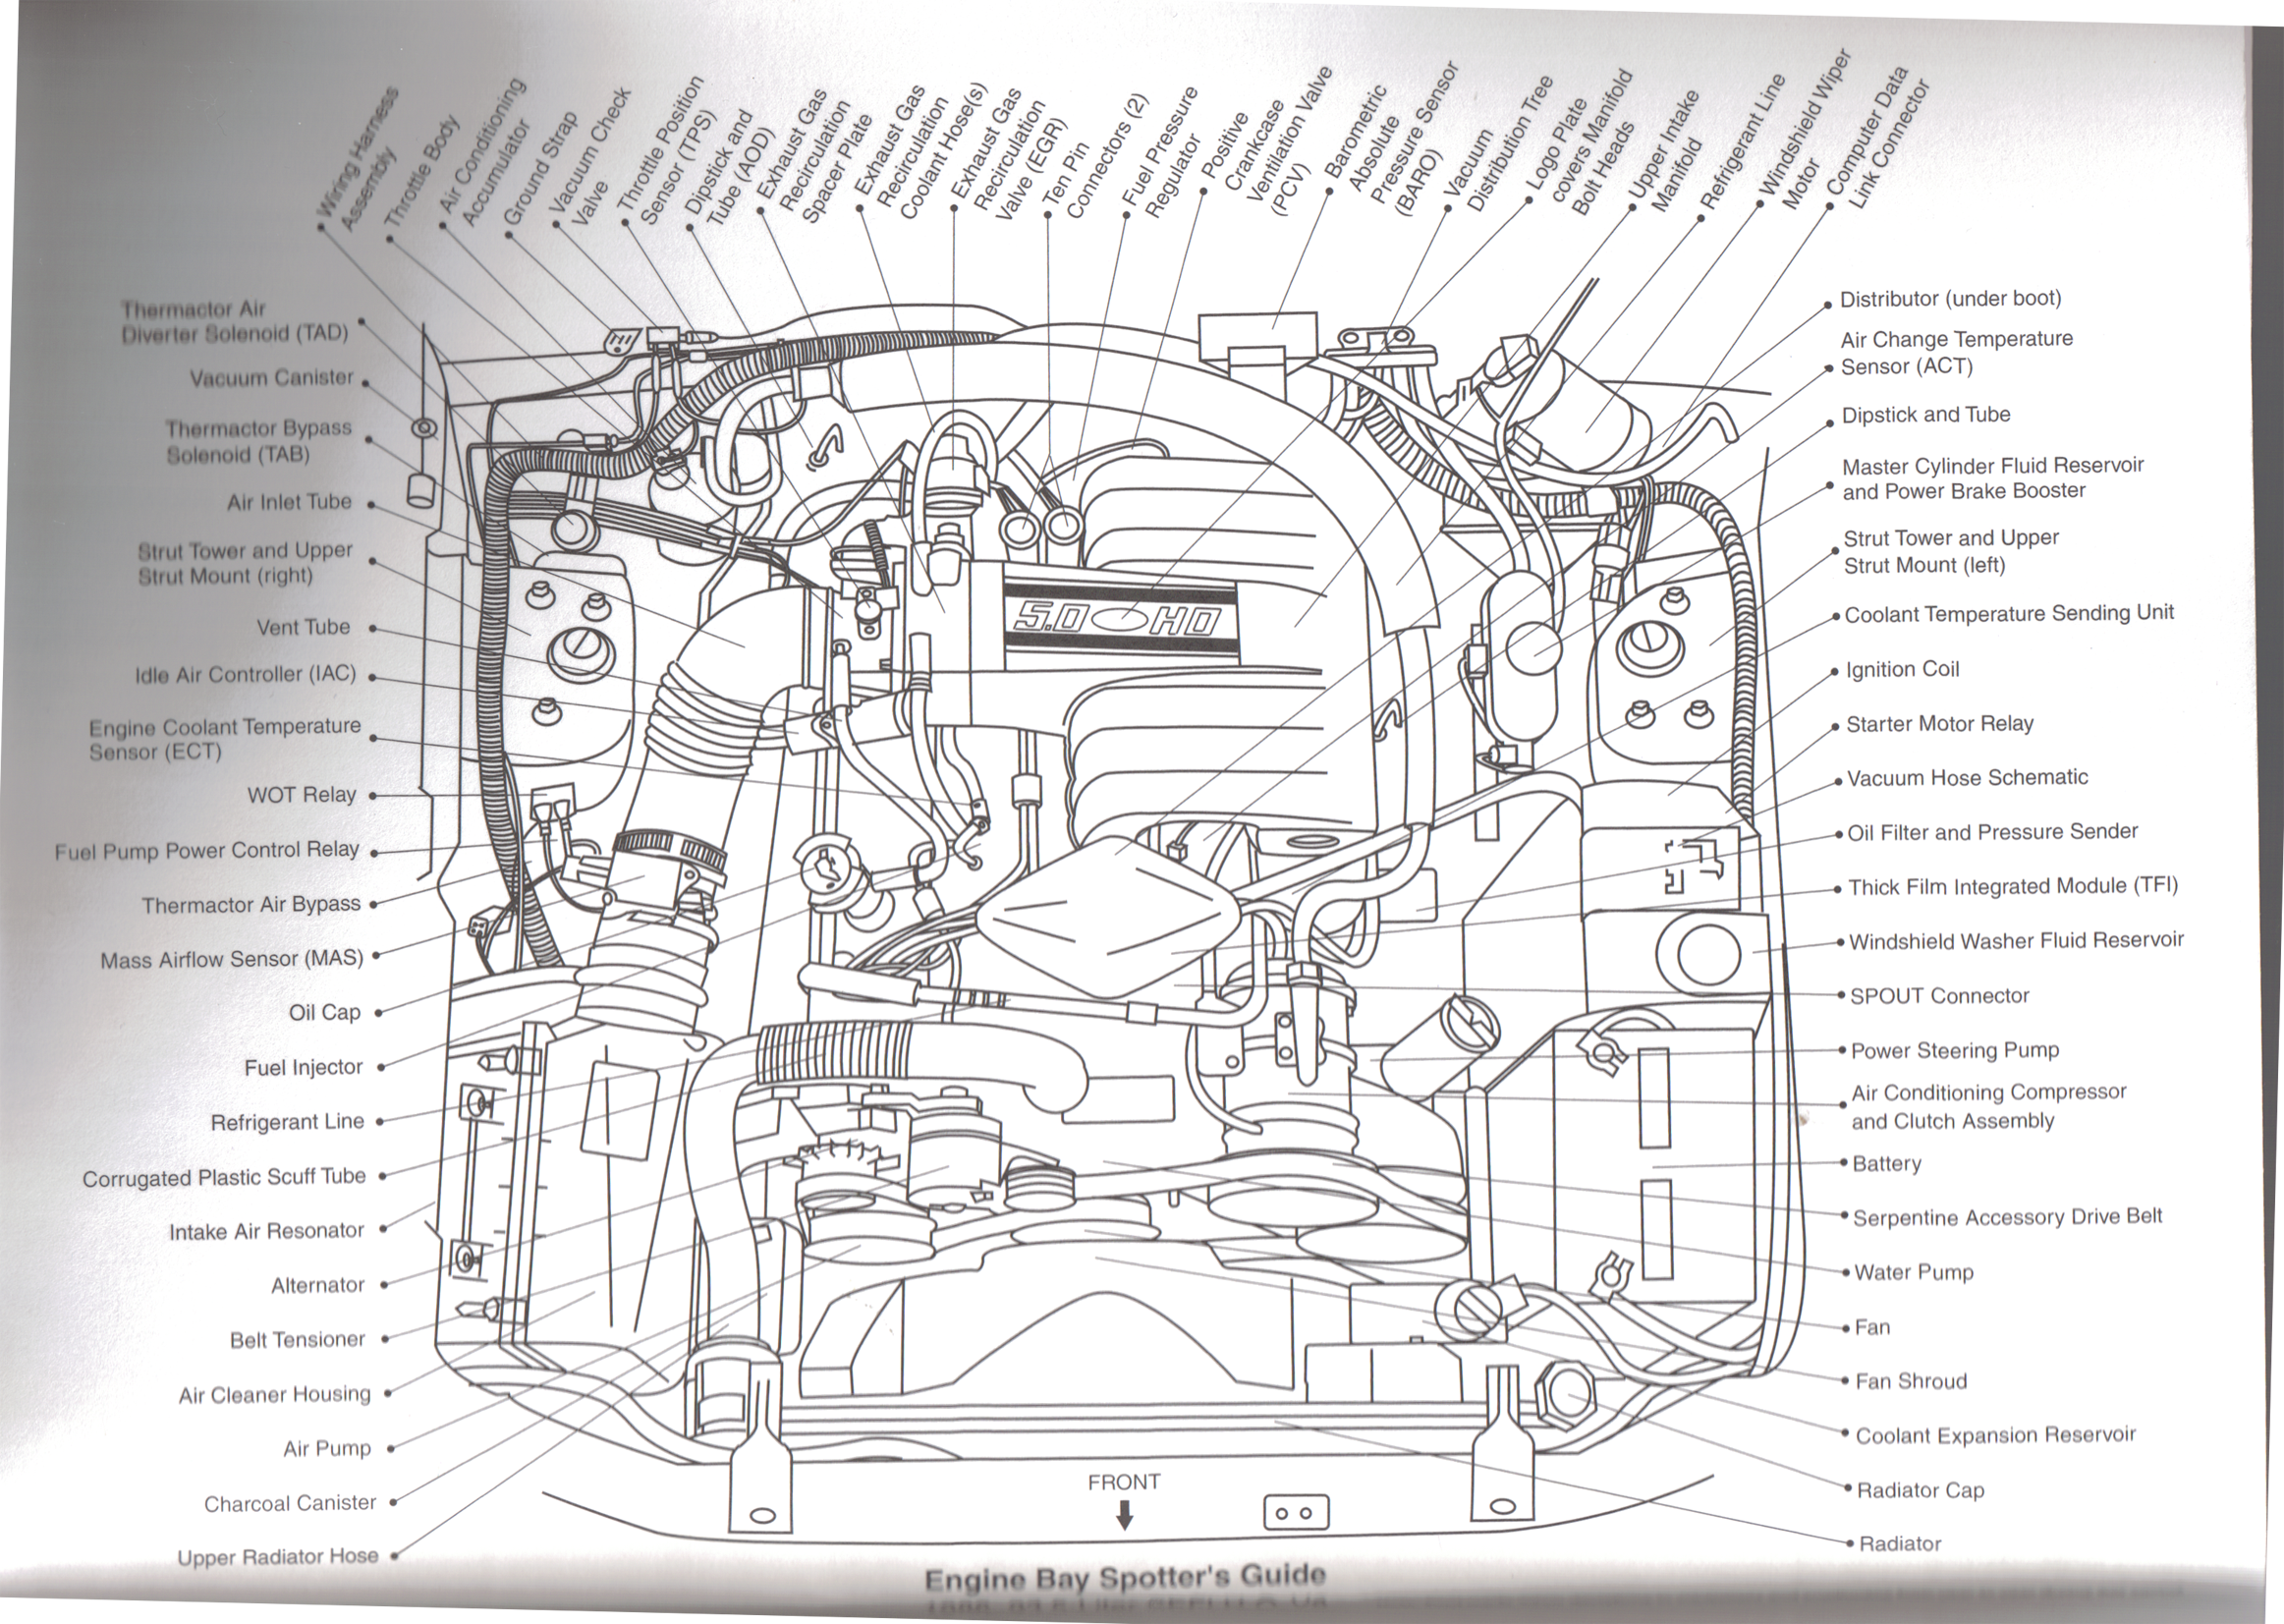 1966 Ford Engine Wiring Diagram Library Dodge Coronet Everything You Need To Know About 1979 1993 Foxbody Mustangs Rh Americanmuscle Com 1983 Mustang Gt 83 302